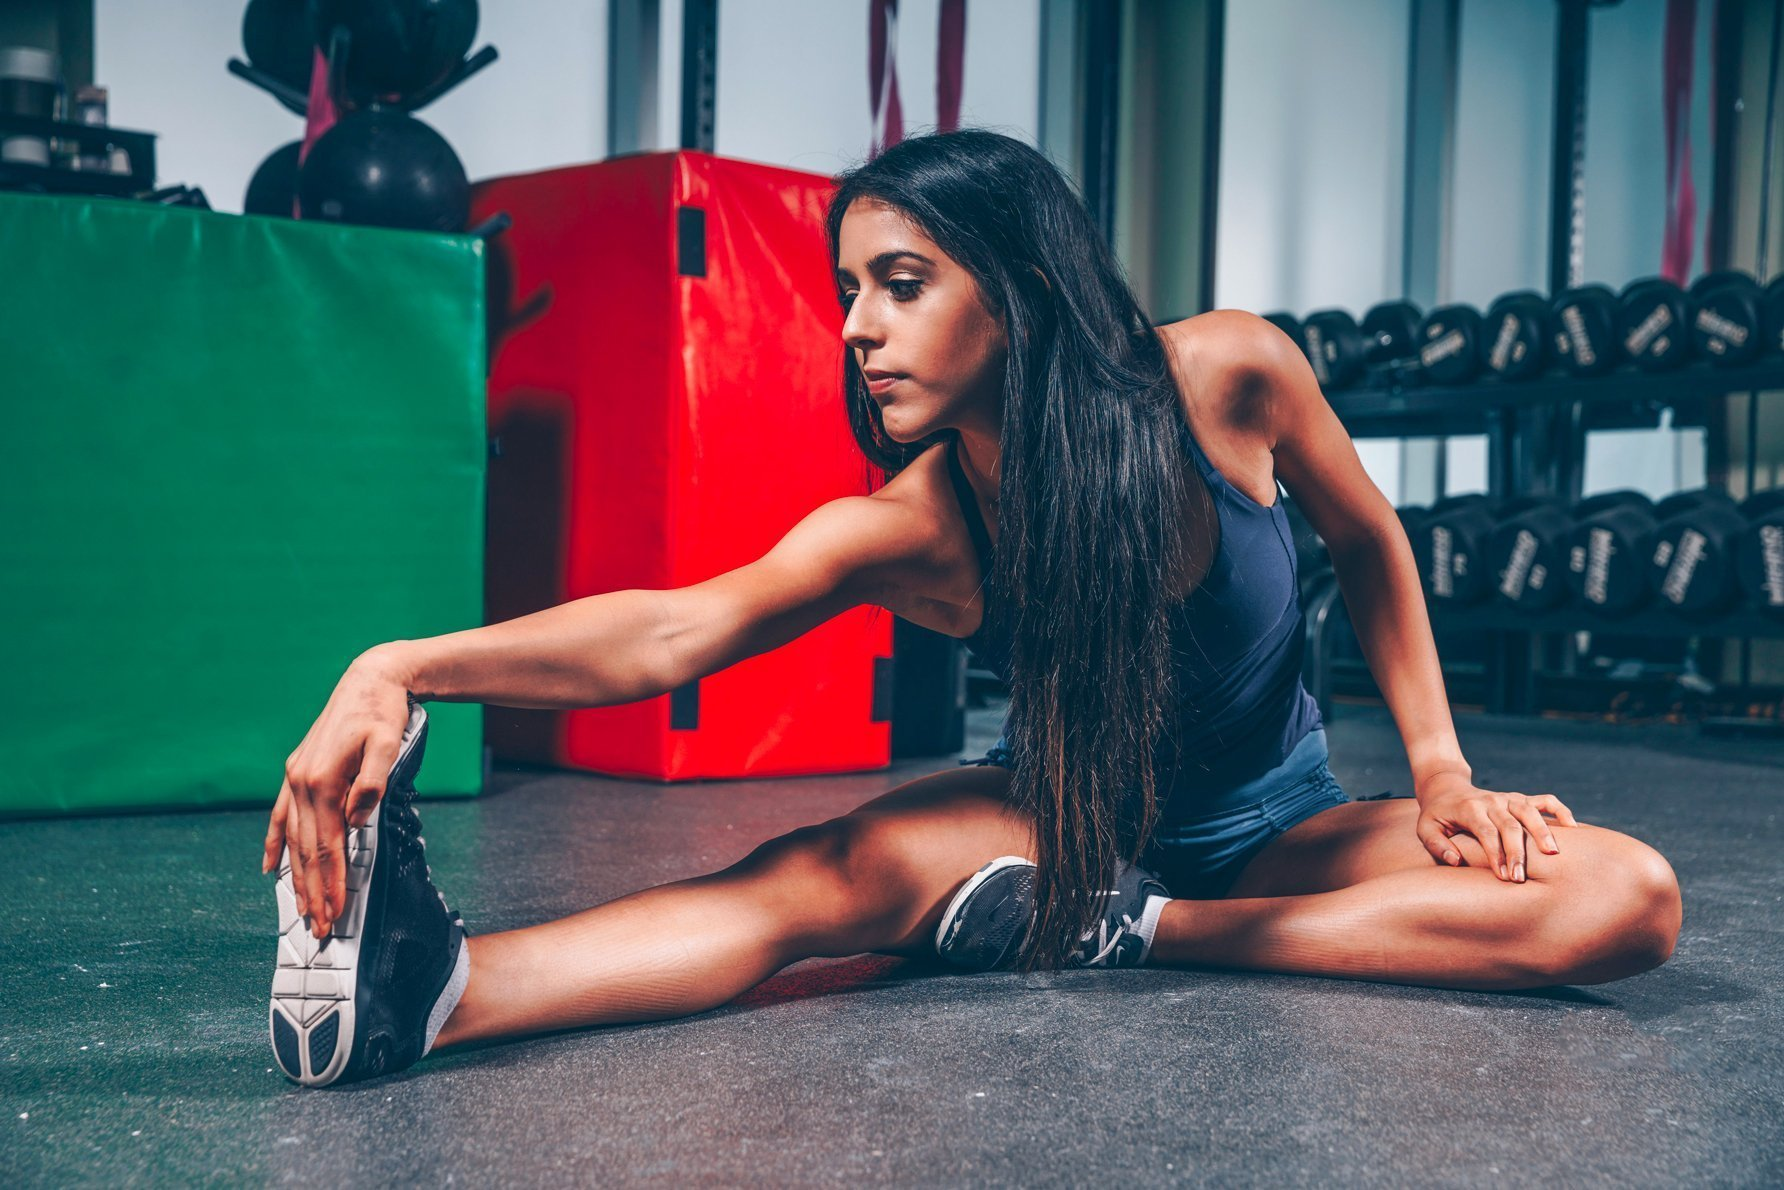 stretchingpro-comment-etirer-stretching-etirement-sport-musculation